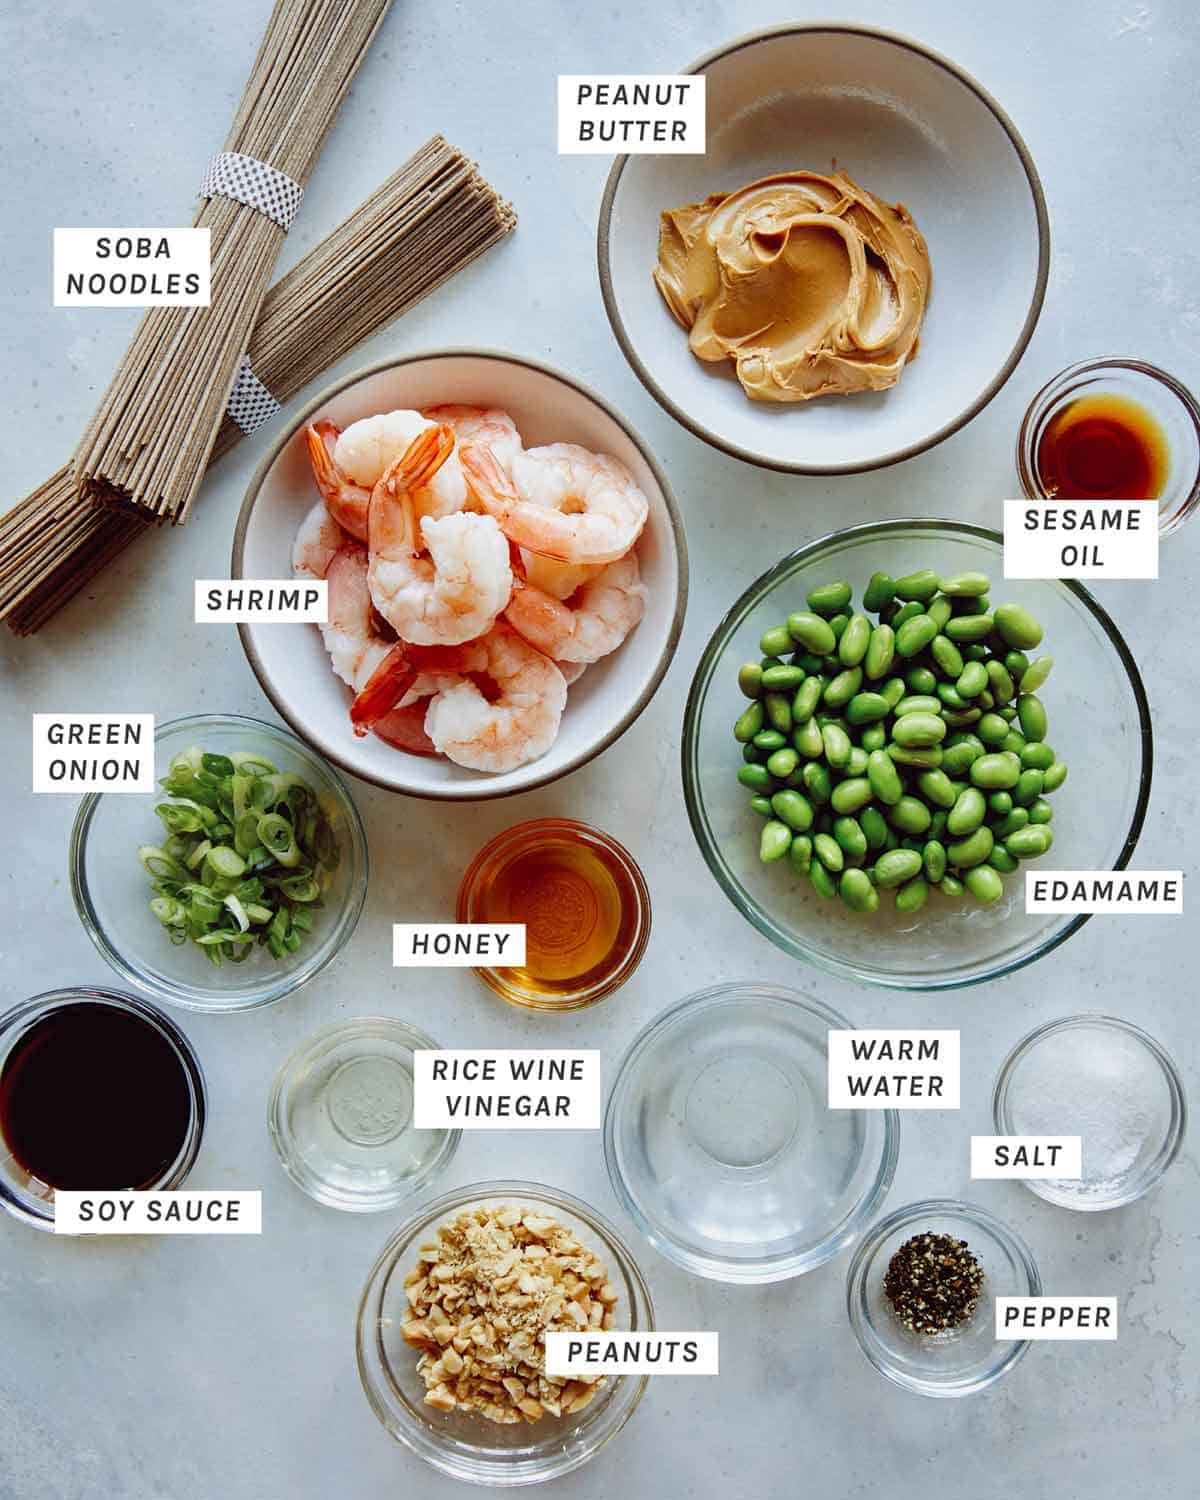 Ingredients to make soba noodles with shrimp all laid out on a counter.